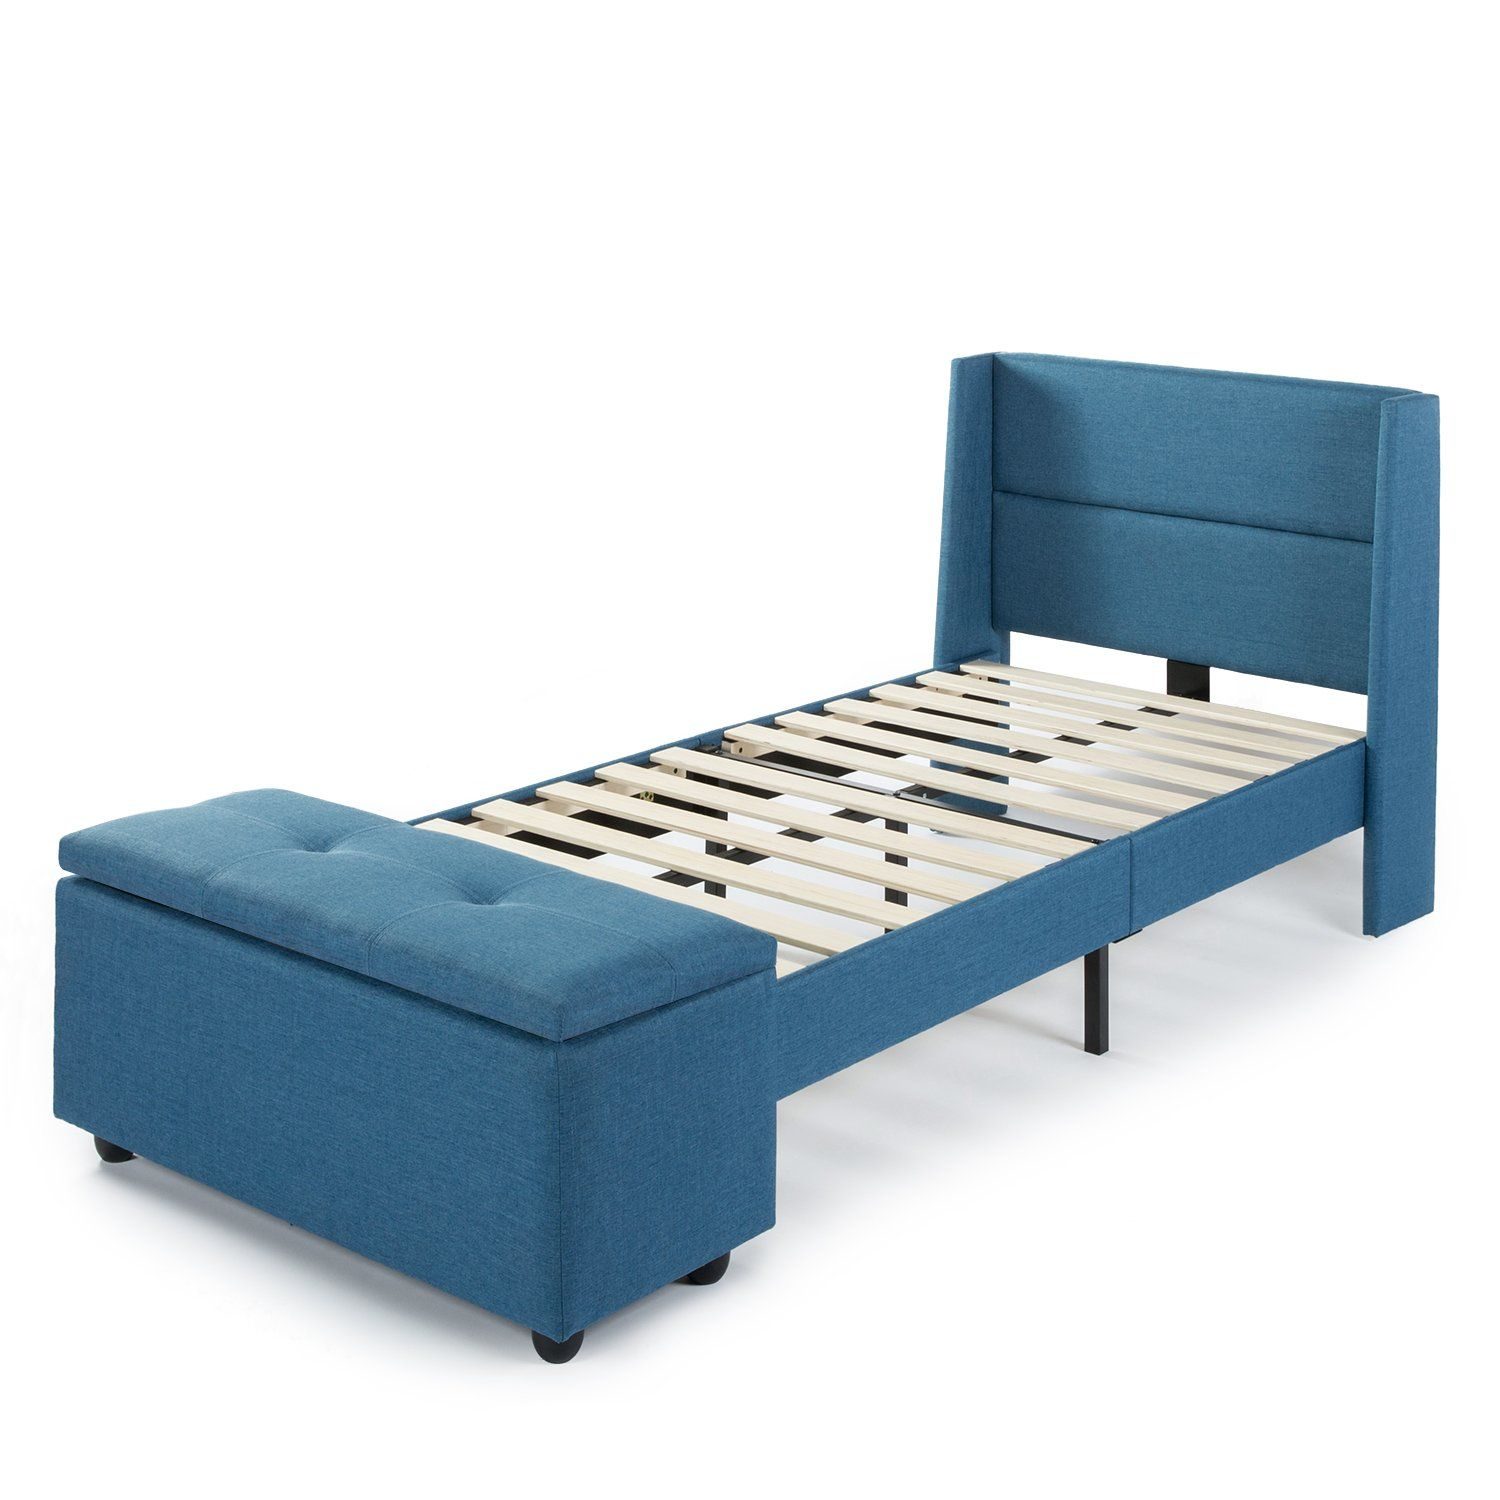 Best Price Mattress Twin Bed Frame Modern Upholstered Platform Beds With Headboard And Be Upholstered Platform Bed Office Furniture Modern Kids Twin Bed Frame